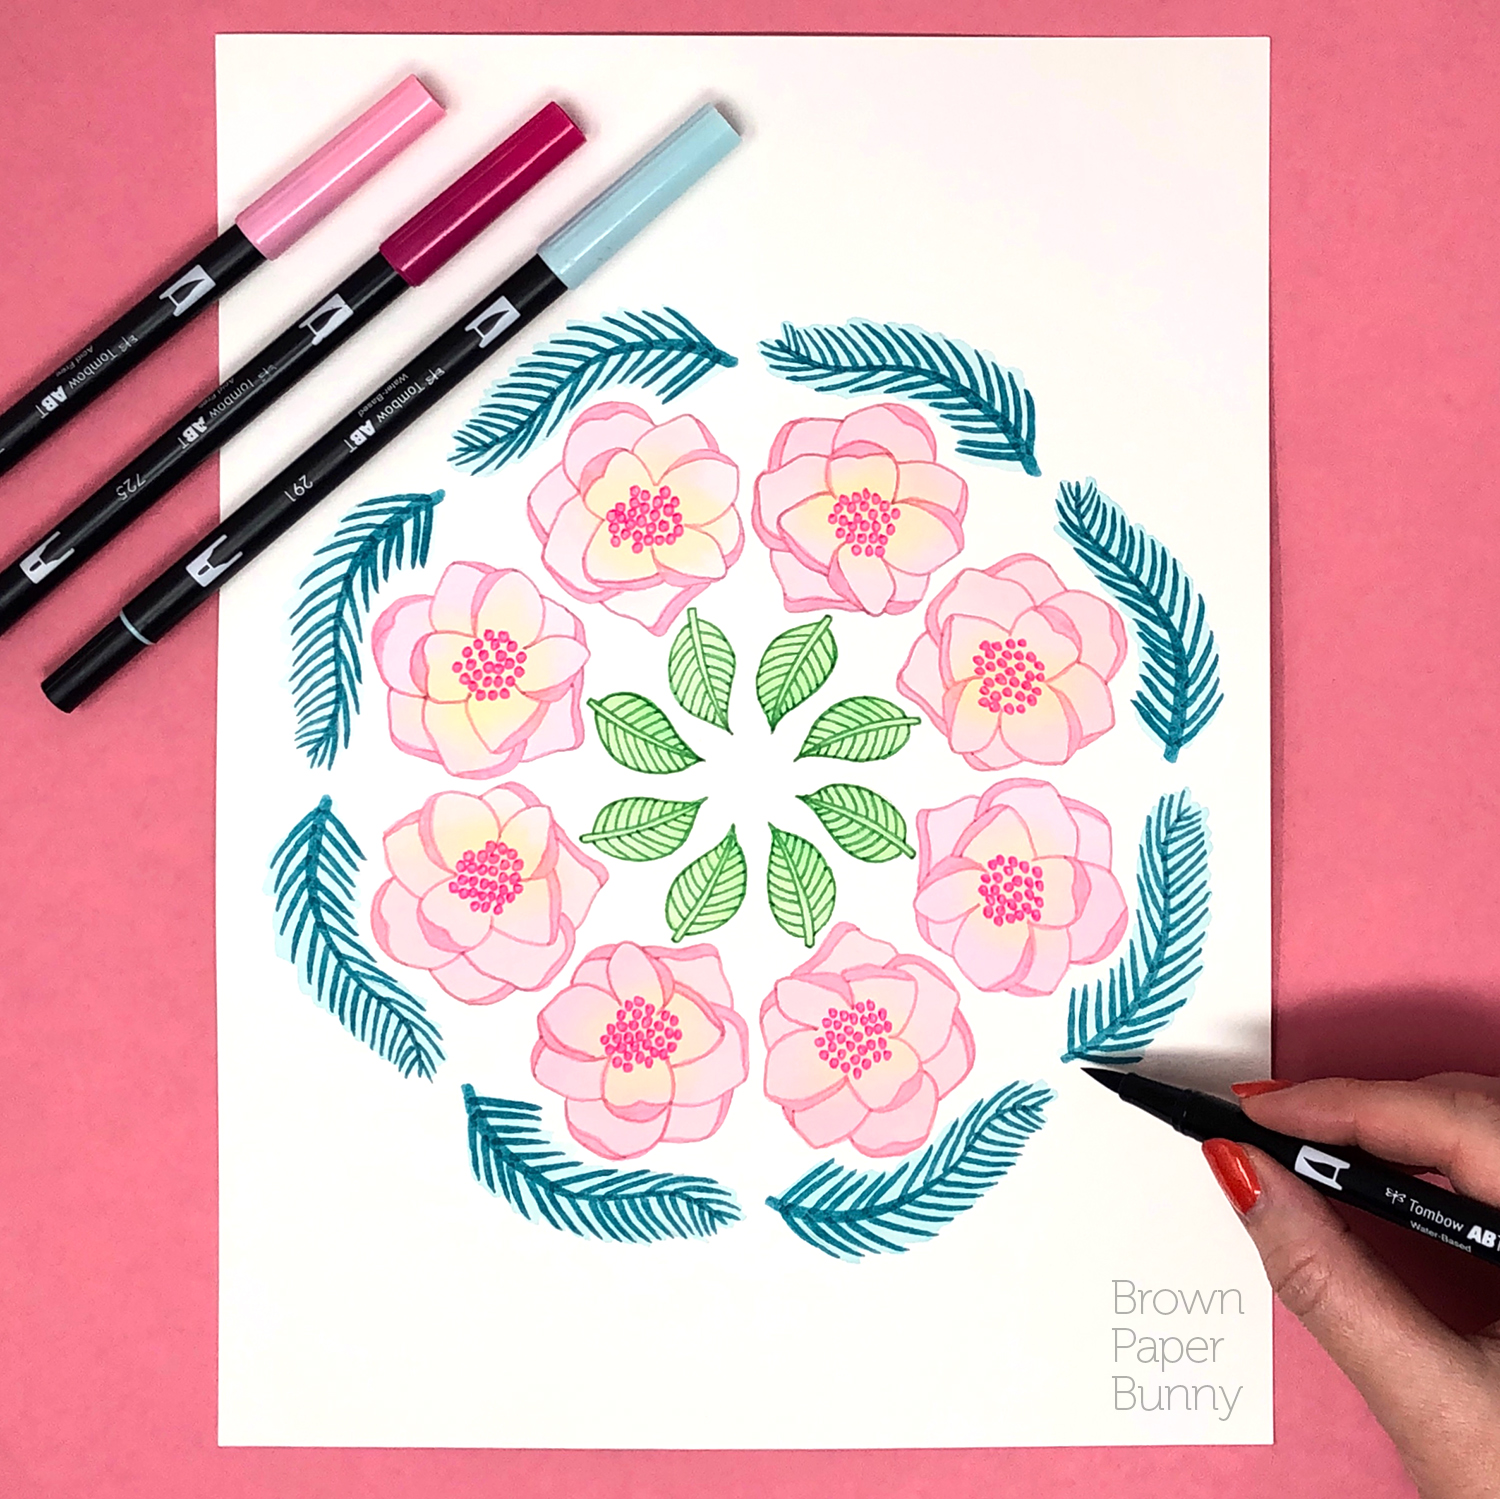 Ink floral design created for Tombow.